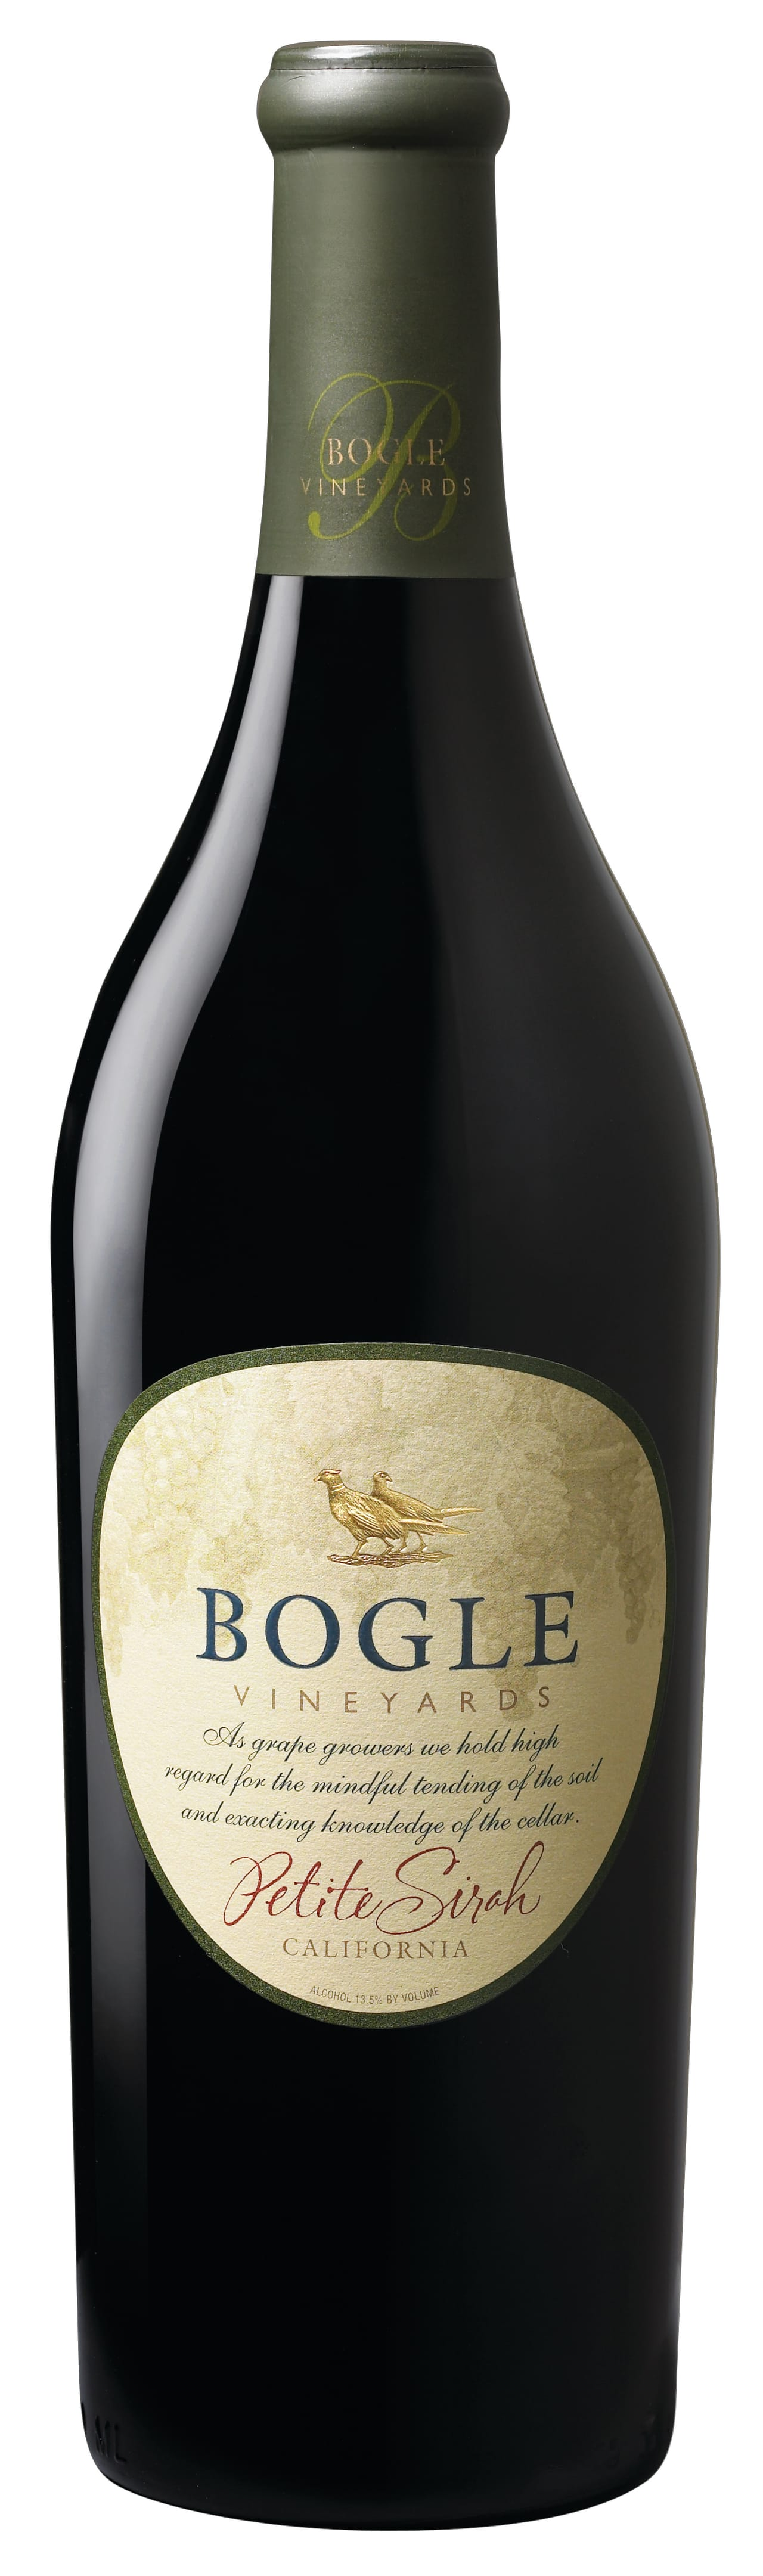 Bogle Petit Syrah California · United States 2016 or Current Vintage